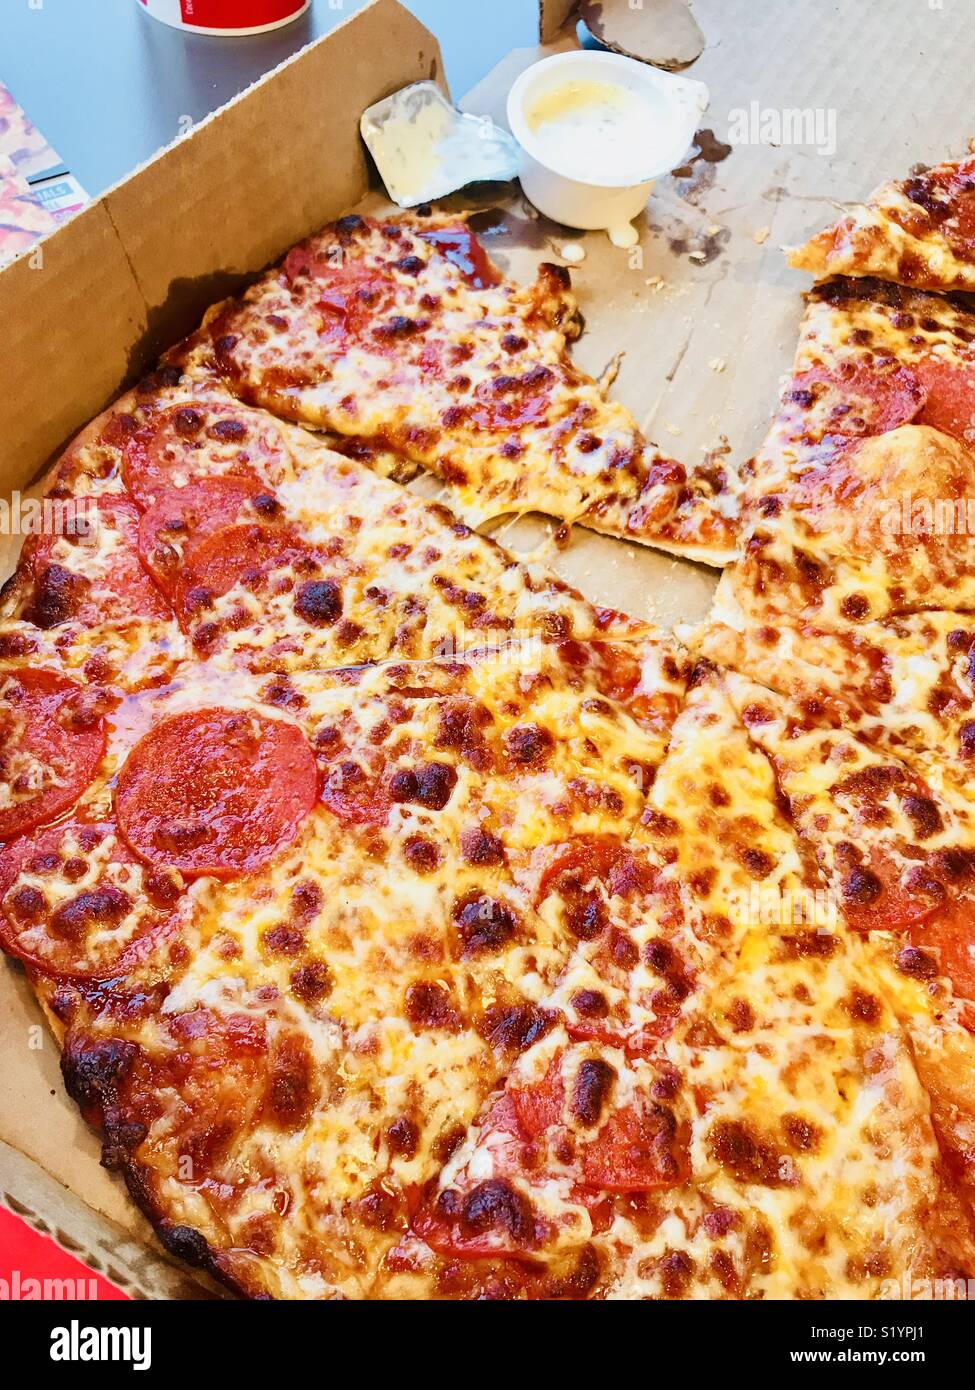 domino s pizza images.html